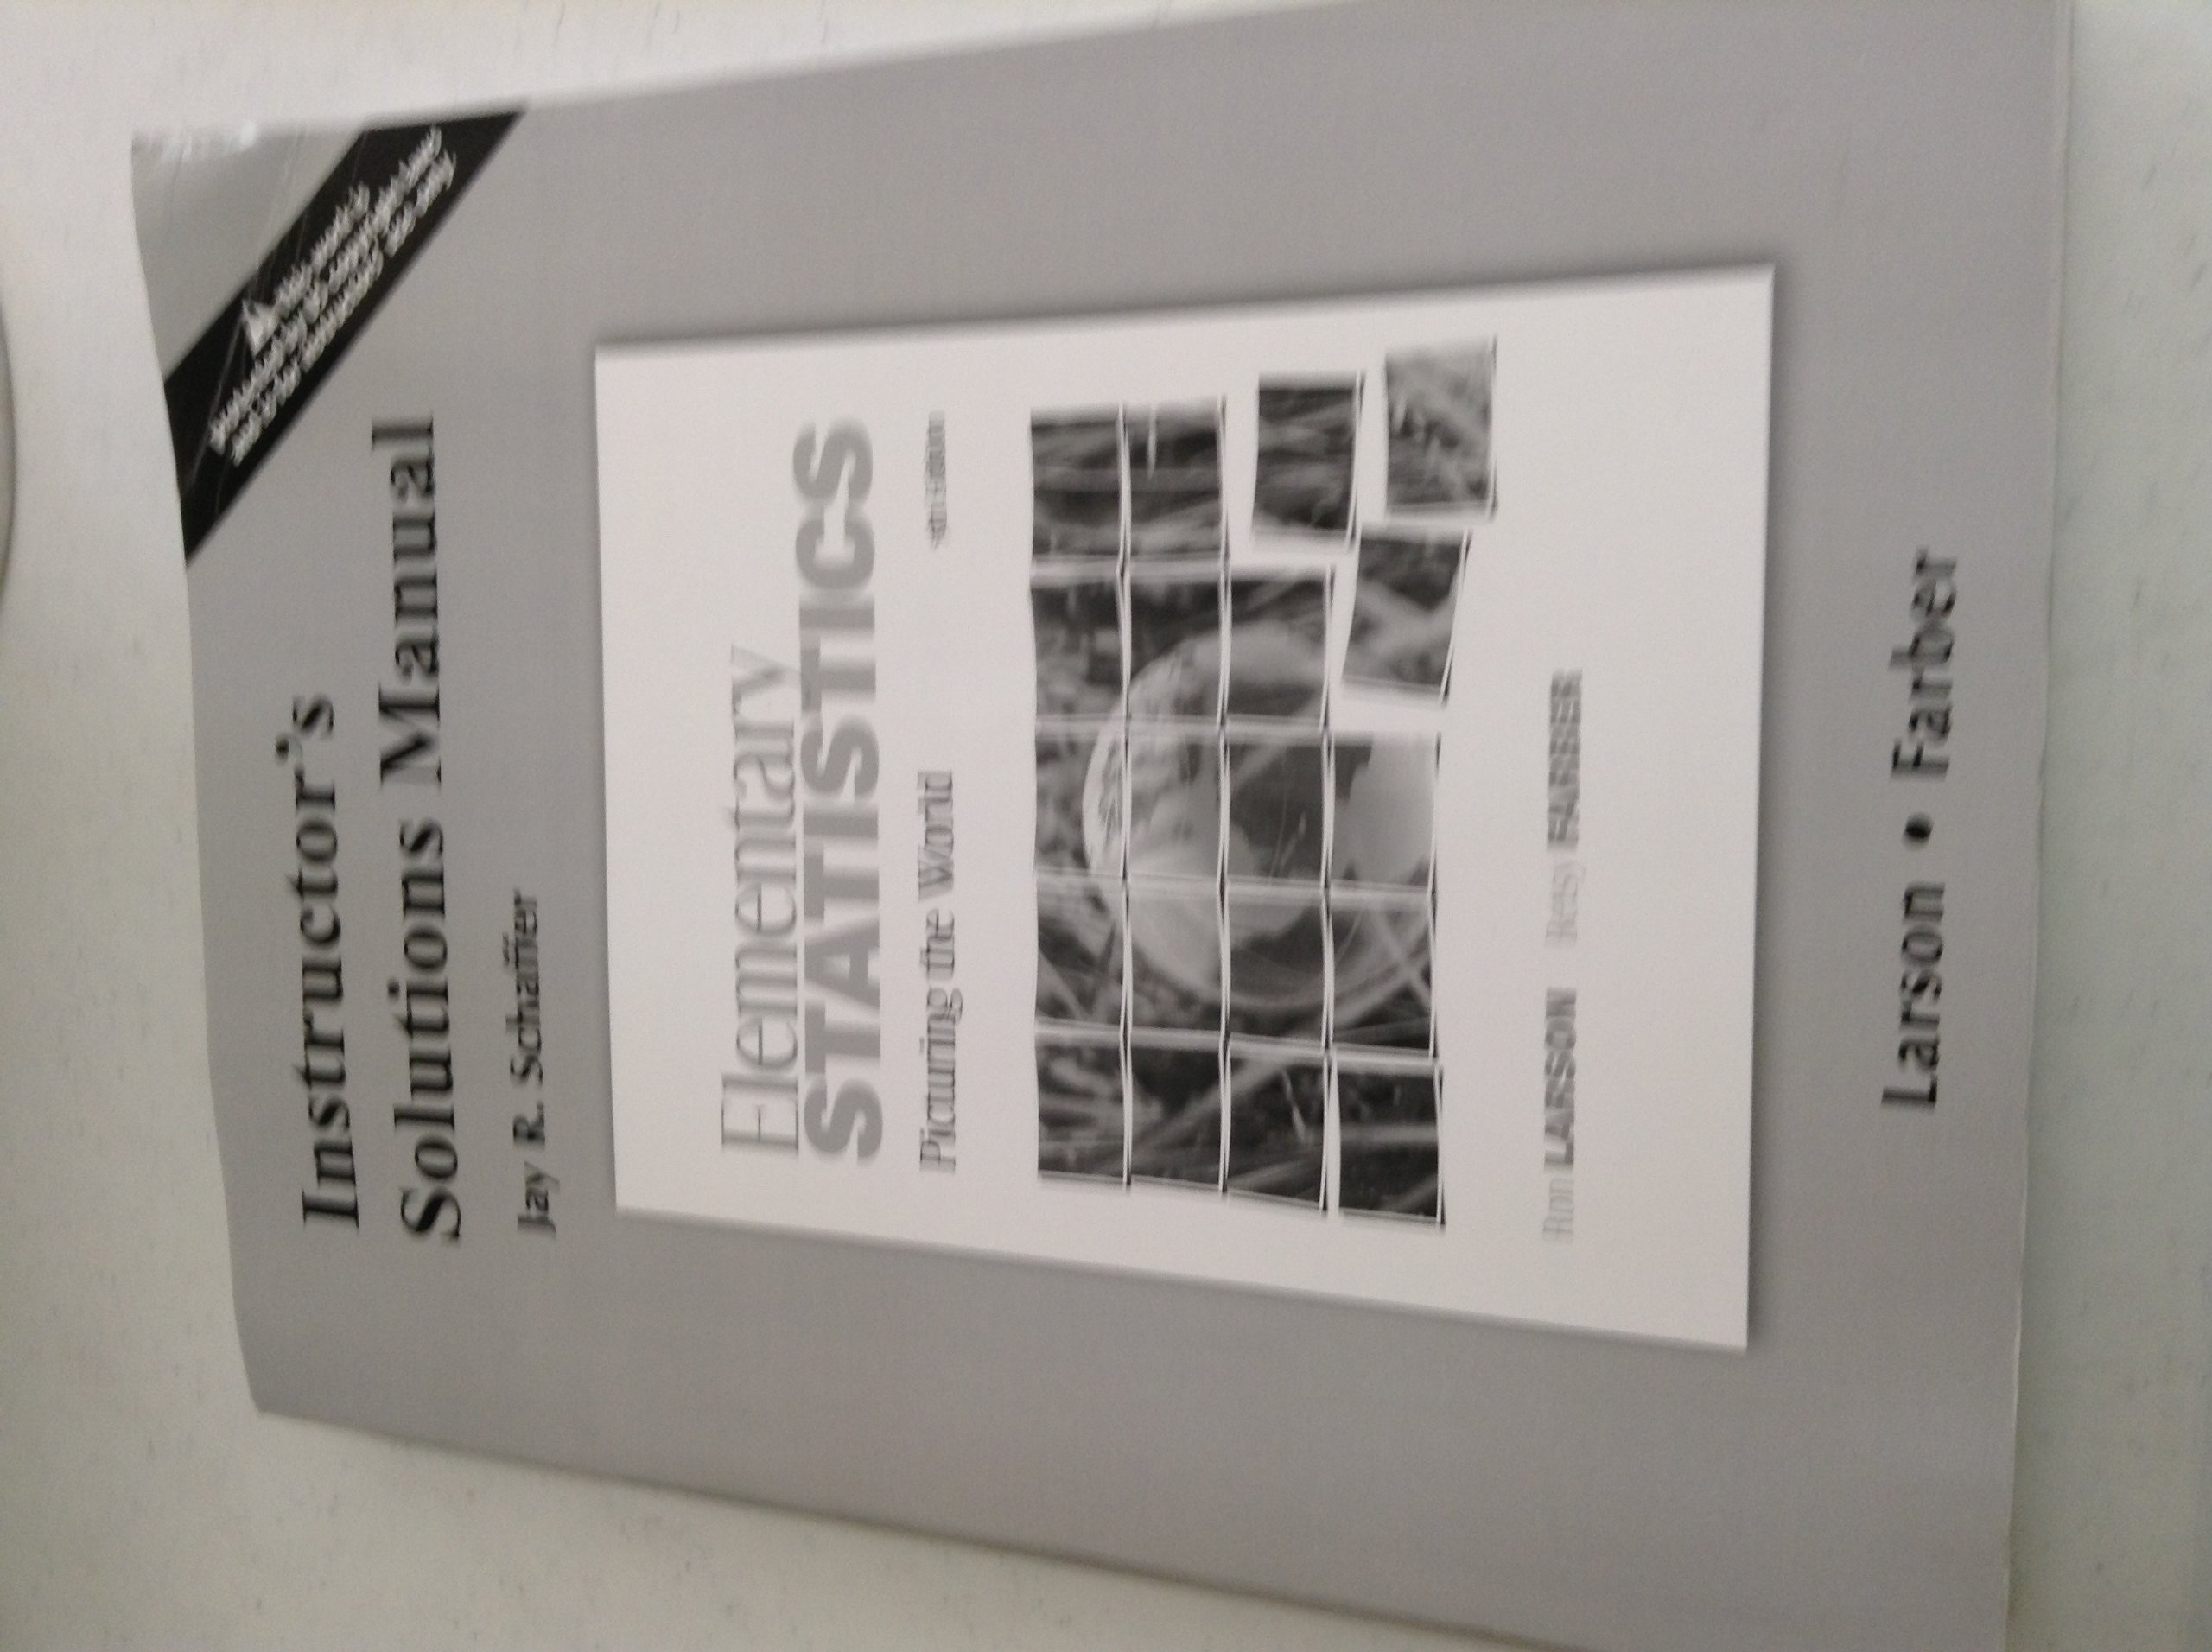 Elementary Statistics Picturing the World 5th Edition Instructor's Solution  Manual: Farber Larson: 9780321693662: Amazon.com: Books